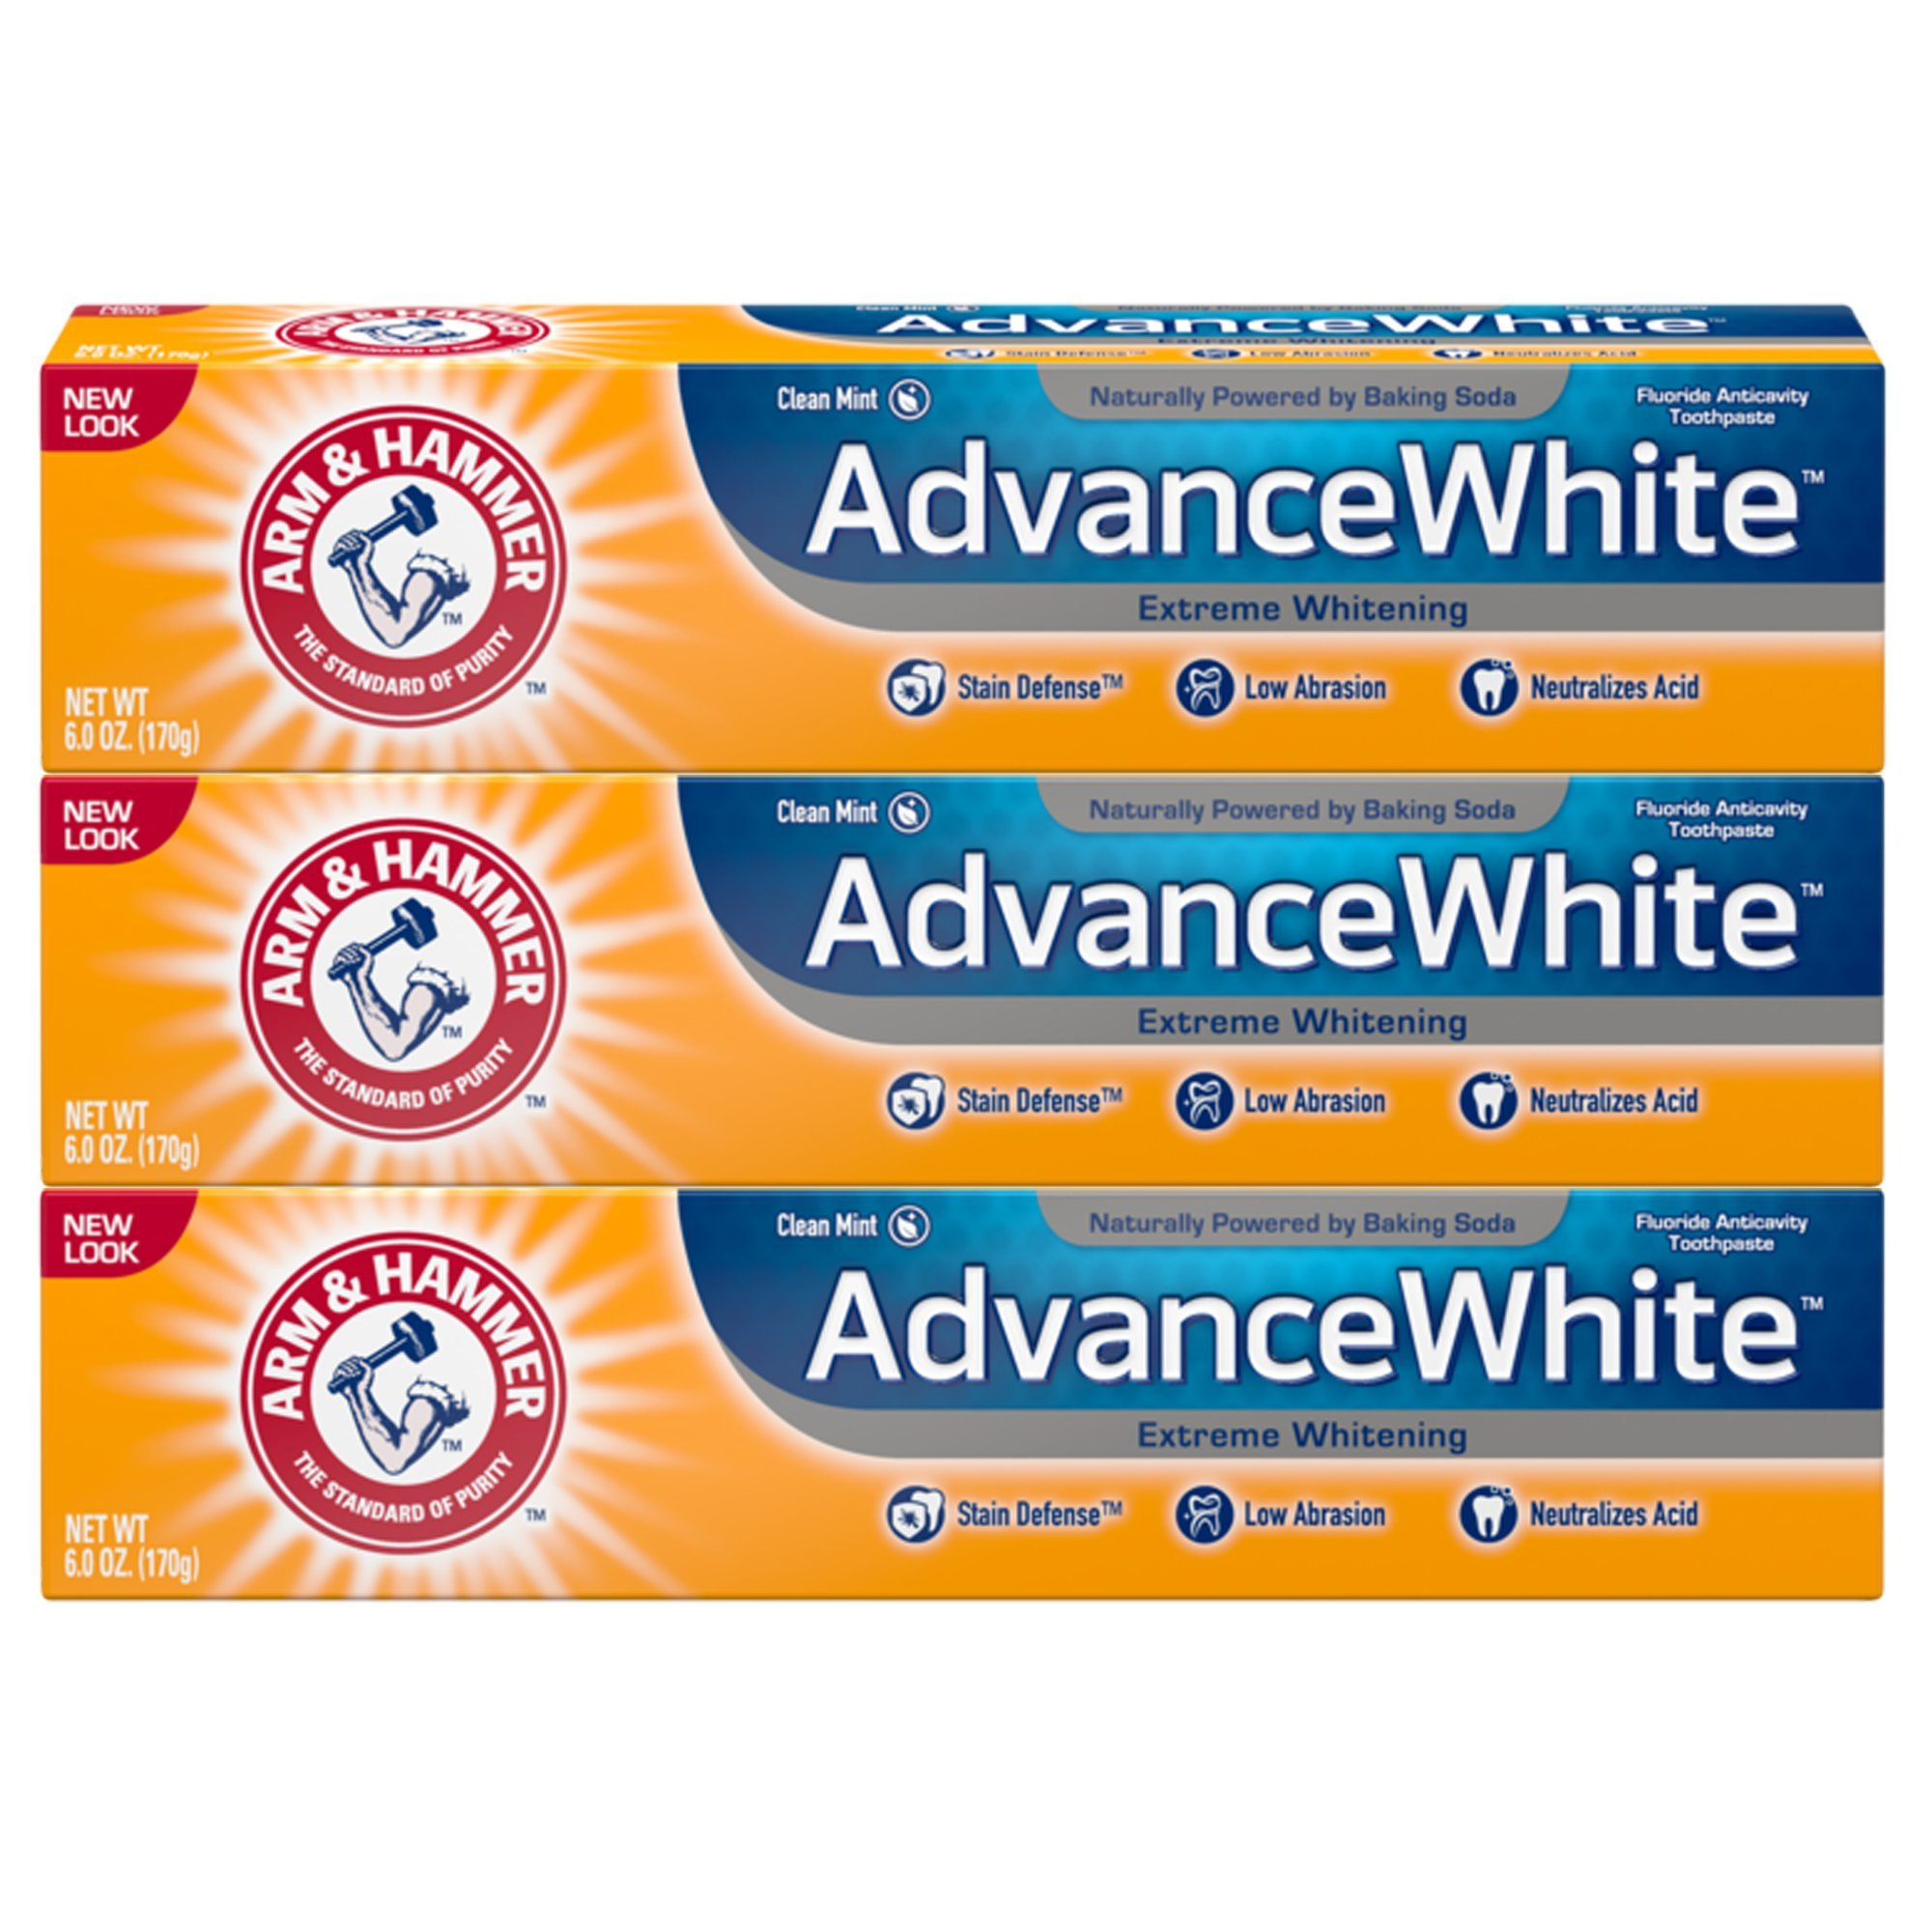 Arm & Hammer Advance White Extreme Whitening Toothpaste, 6 oz, 3 Count (Packaging May Vary)